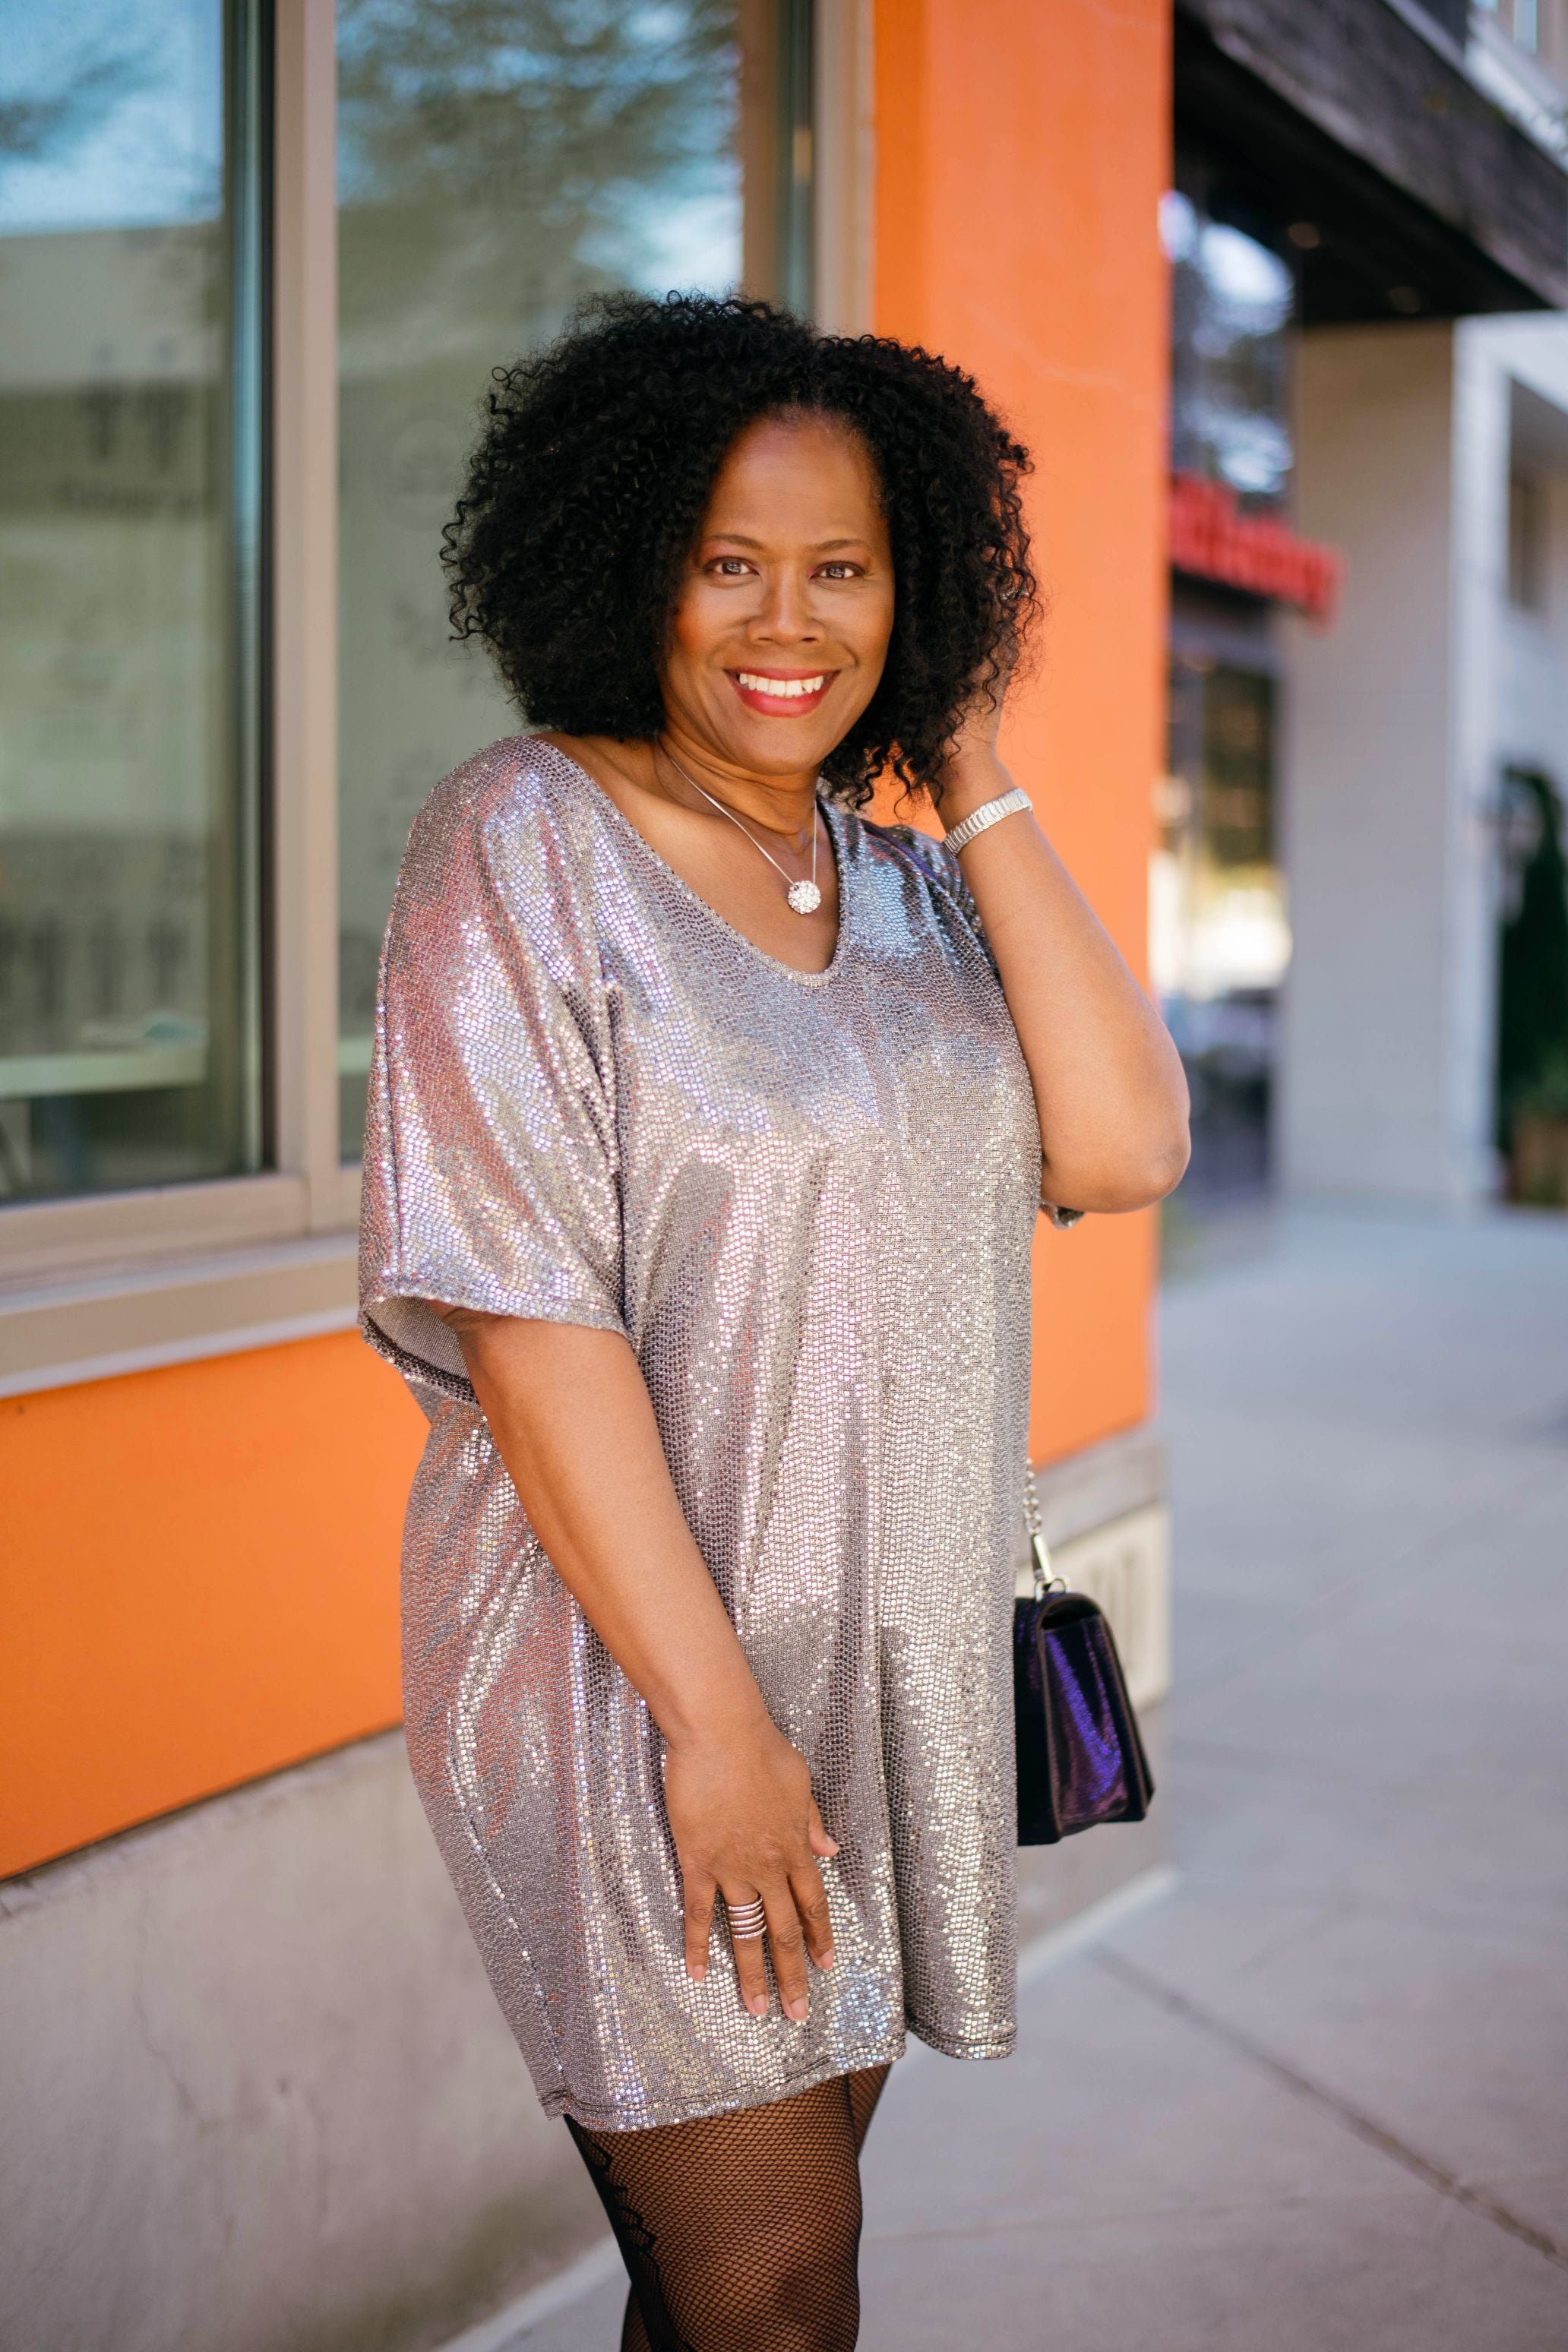 All That Glitter's Tunic Dress